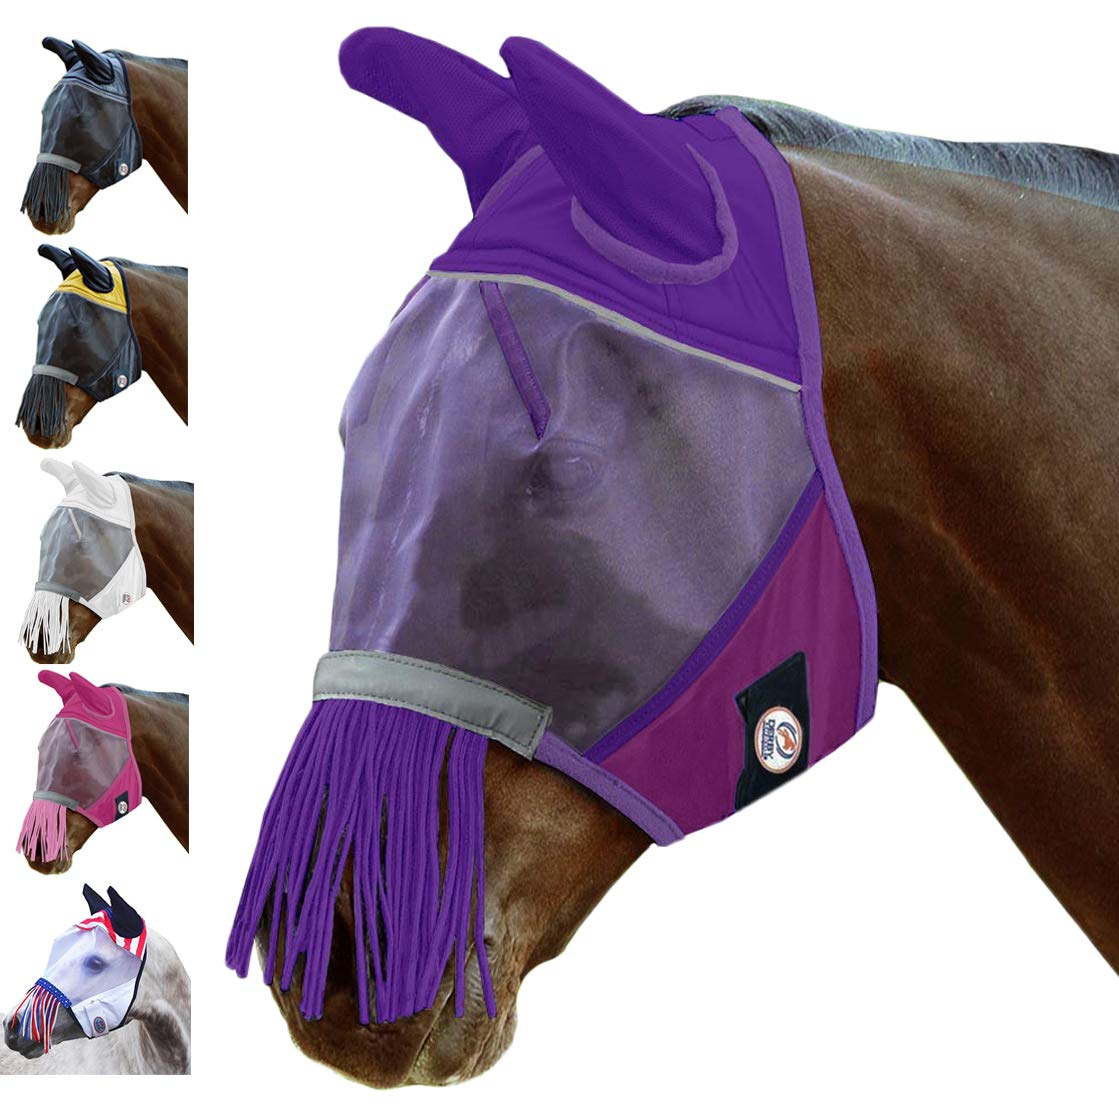 Derby Originals UV-Blocker Premium Reflective Safety Horse Fly Mask with Ears and Nose Fringe - One Year Limited Manufacturer's Warranty - Multiple Sizes and Colors